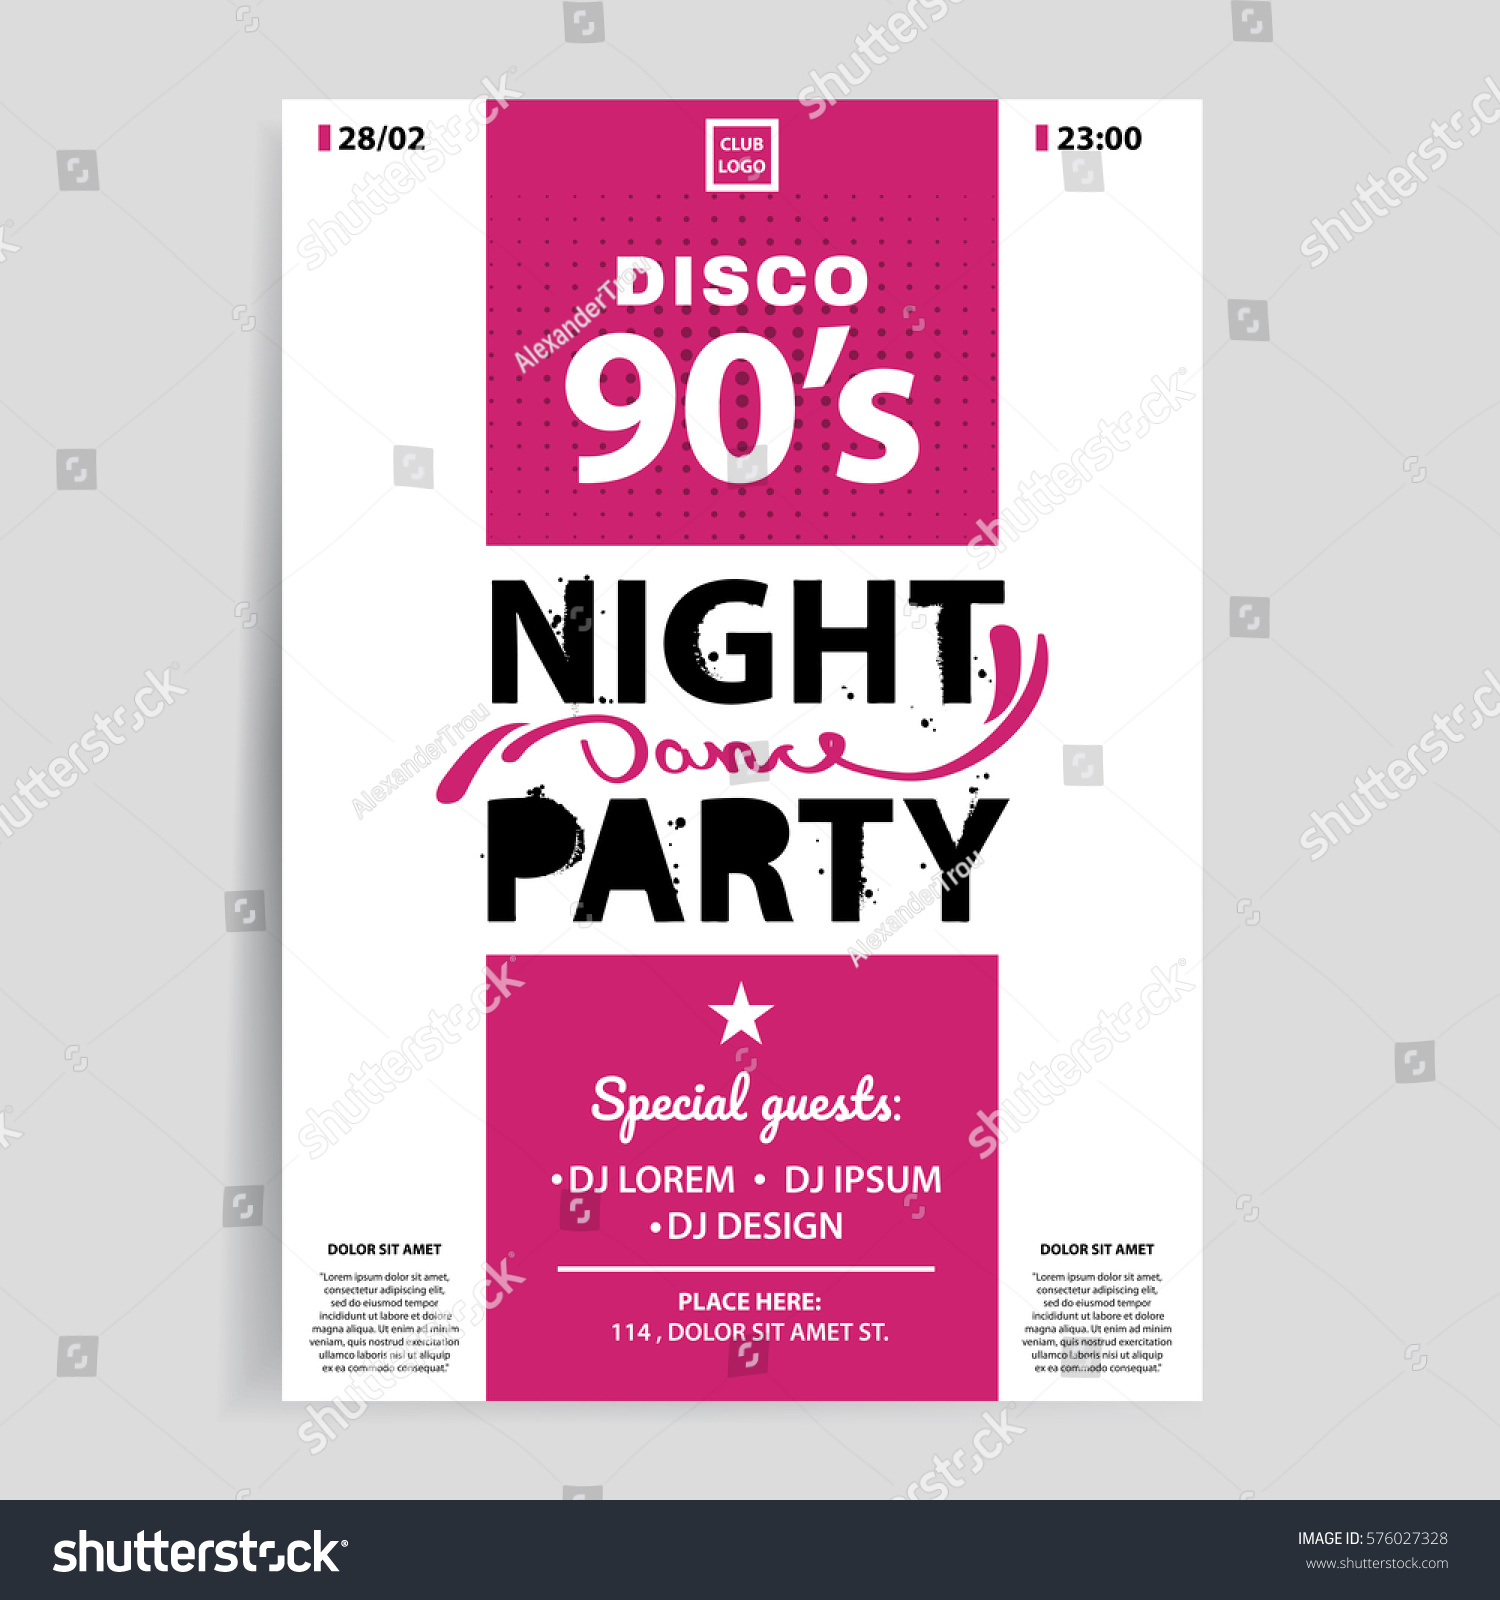 Night Party Invitation Flyer. Template For Your Event Design. Vector Eps